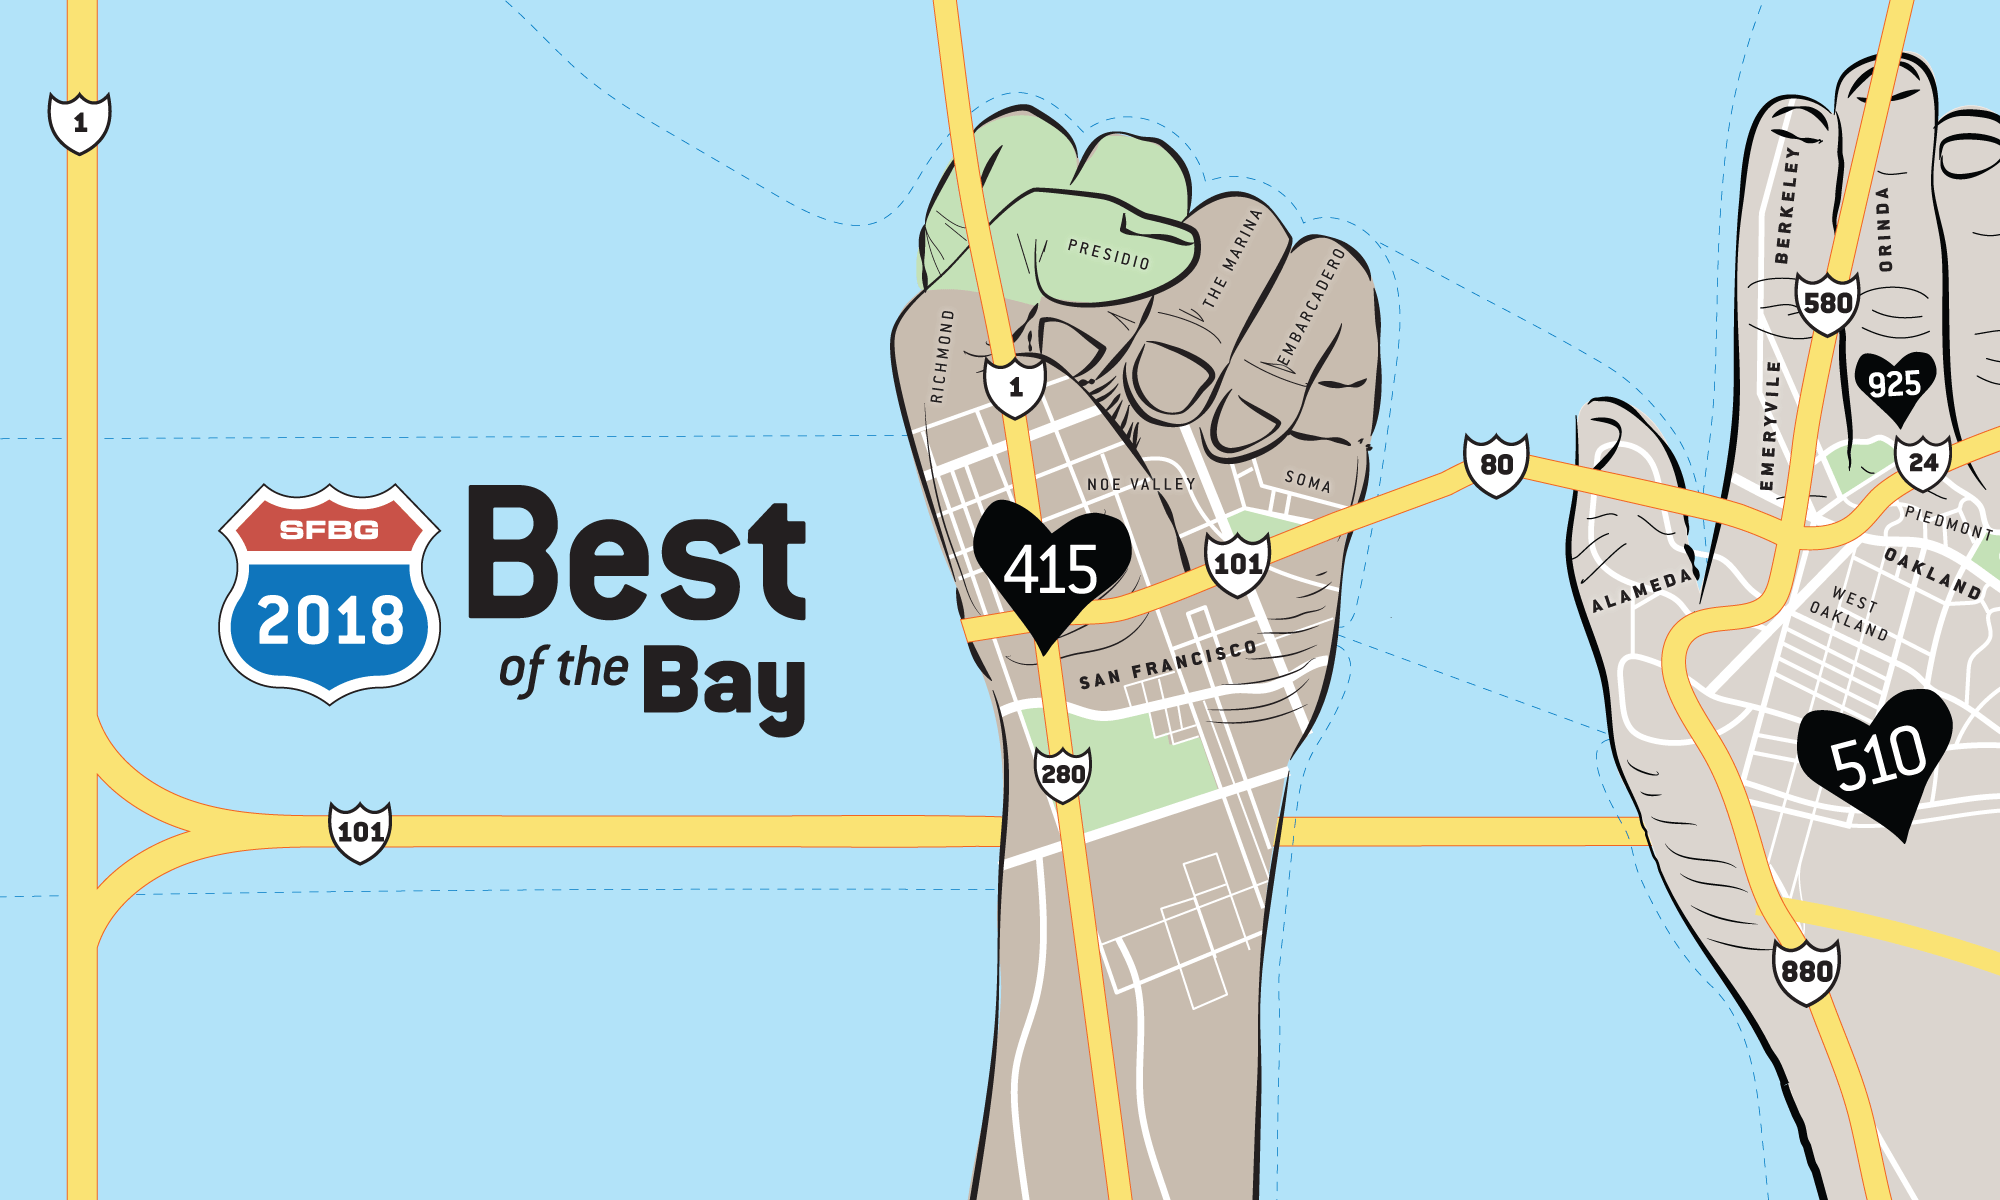 BOB-2018-SF-East_Bay-voting-page-1.png